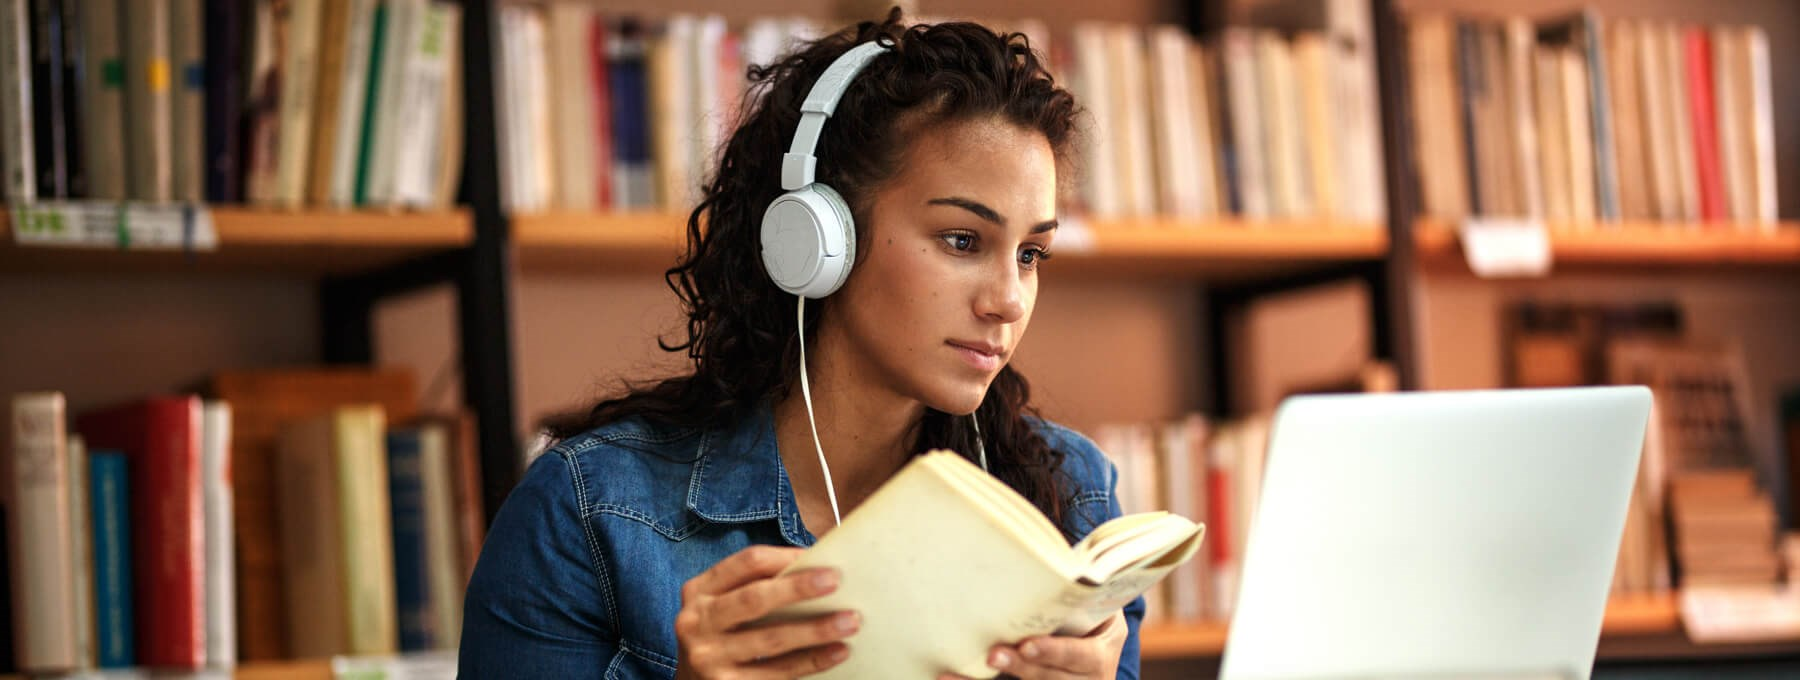 Student with Headphones referencing Book